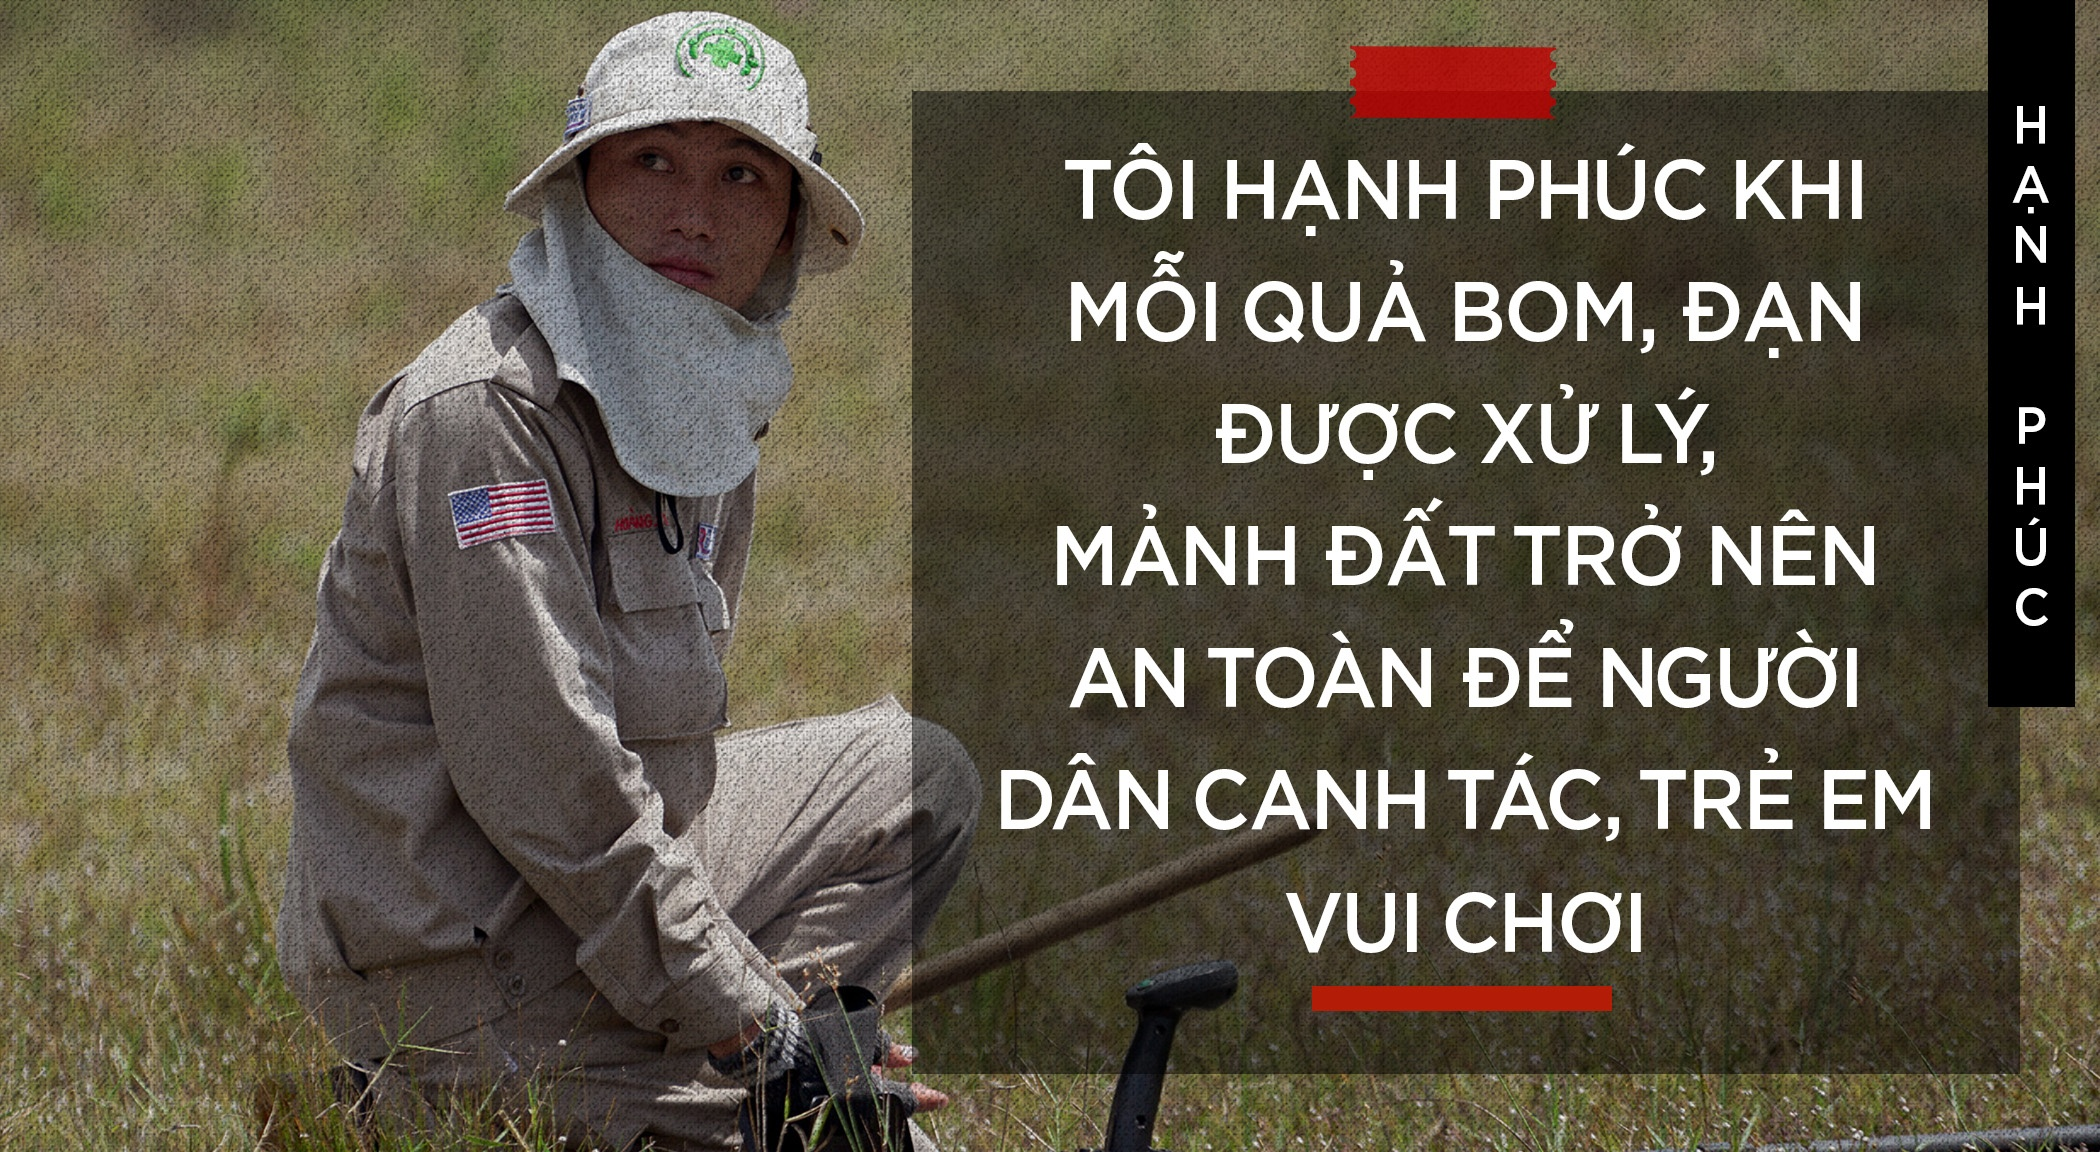 Hoi sinh vung dat chet Quang Tri: Cuoc chien day mau va nuoc mat hinh anh 10